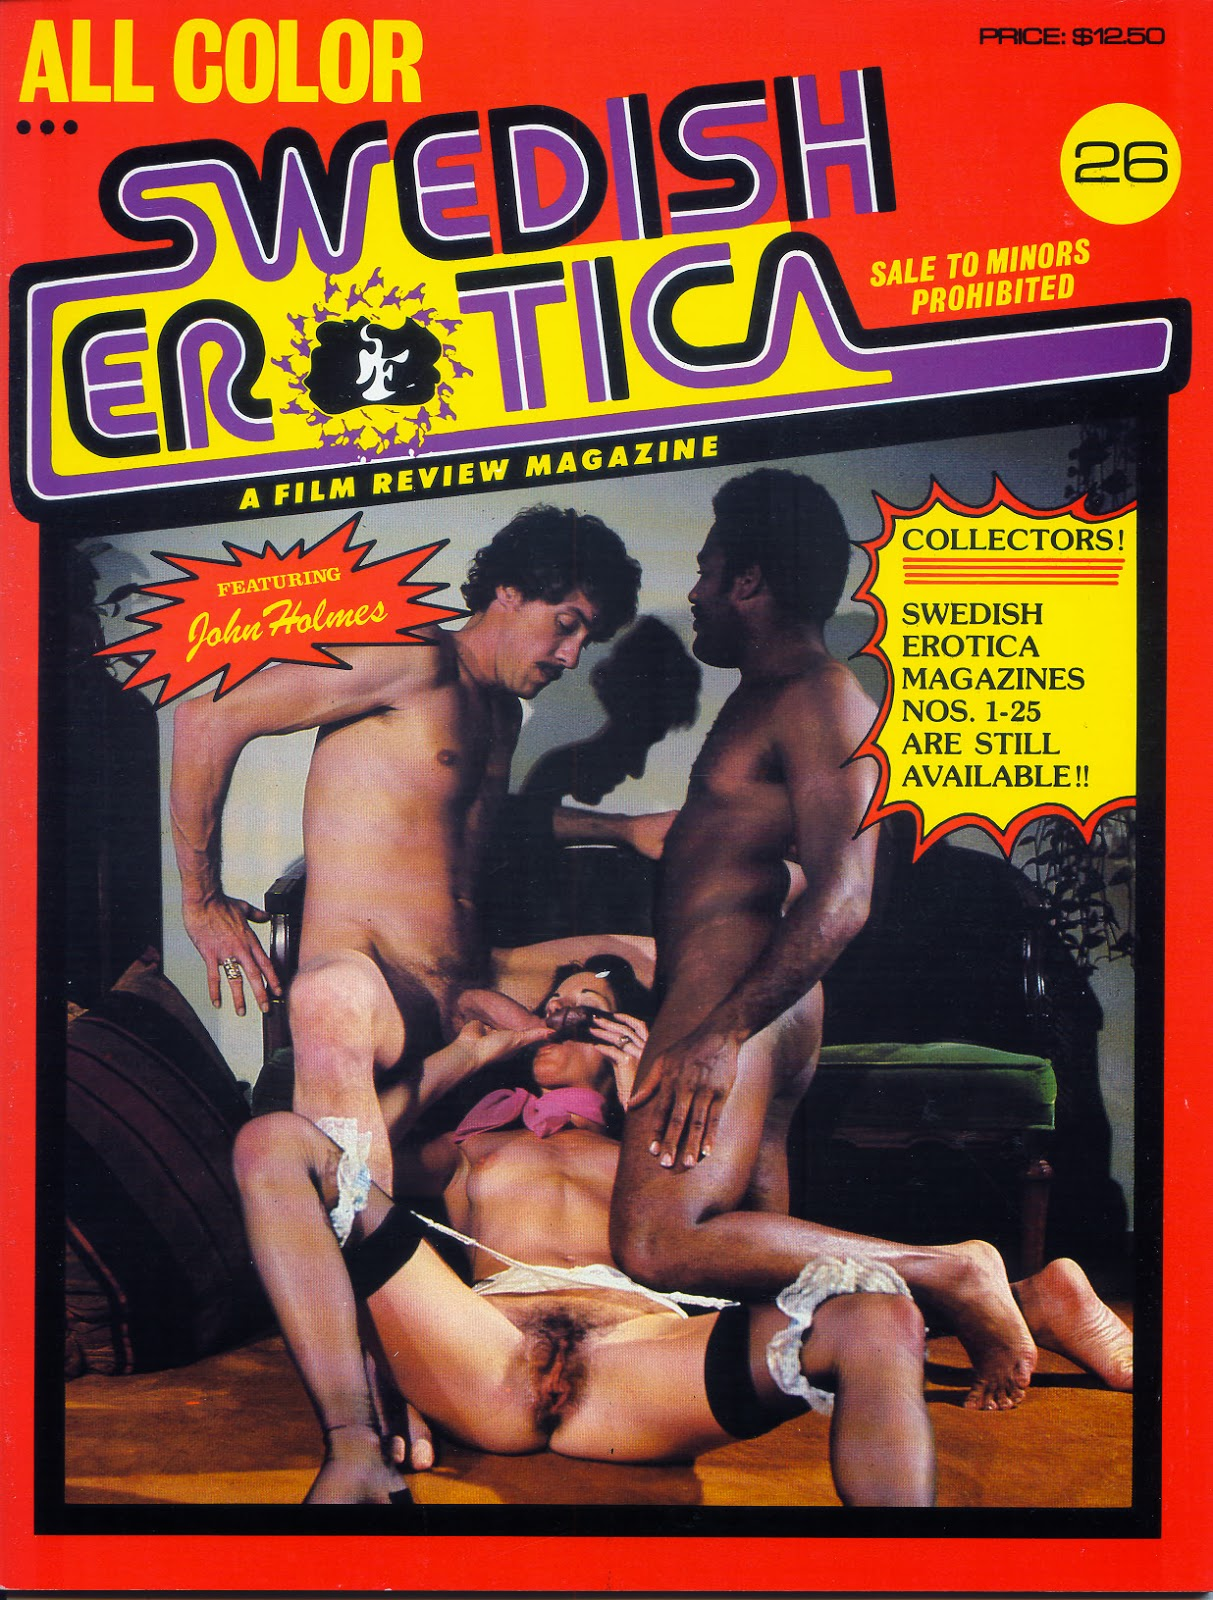 Share your Swedish erotica video review